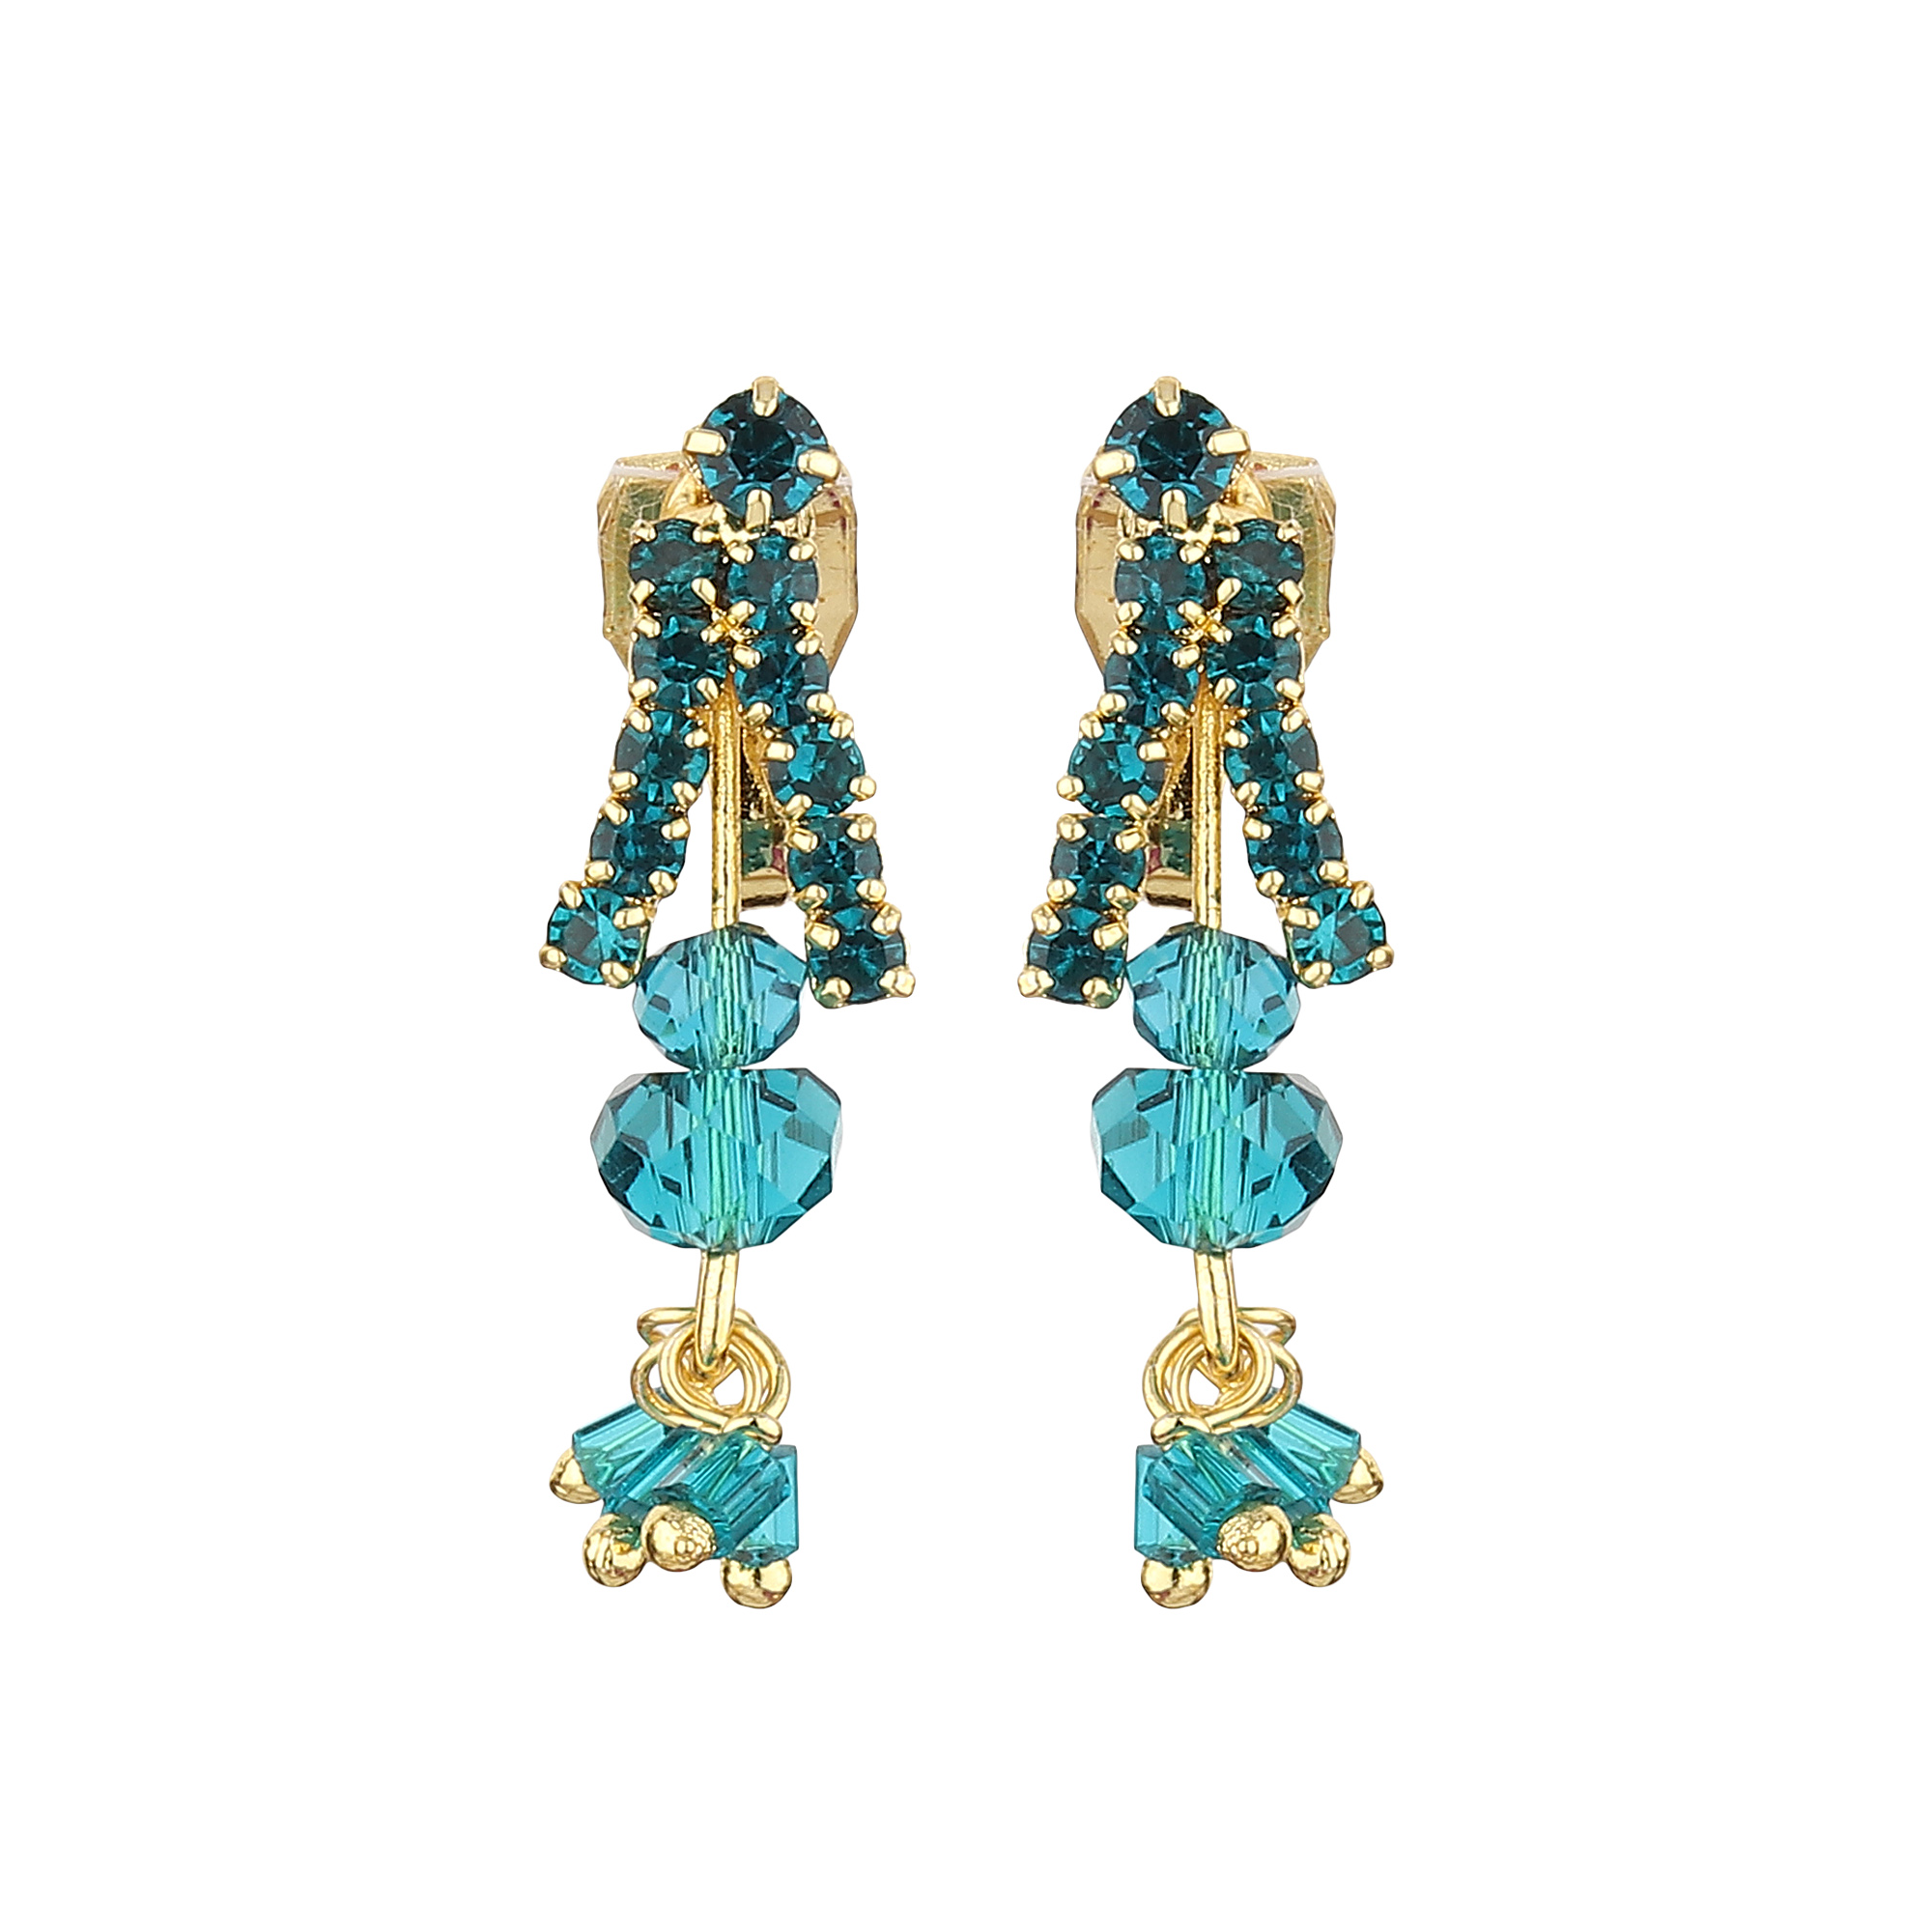 FirstBlush | FirstBlush Clip On Earrings for Non Piearced Ears for Women & Girls; Plating: Gold; Color: Aqua (Blue); Size: 30 X 10mm; Wt.: 3gm. (MIEC104M142)